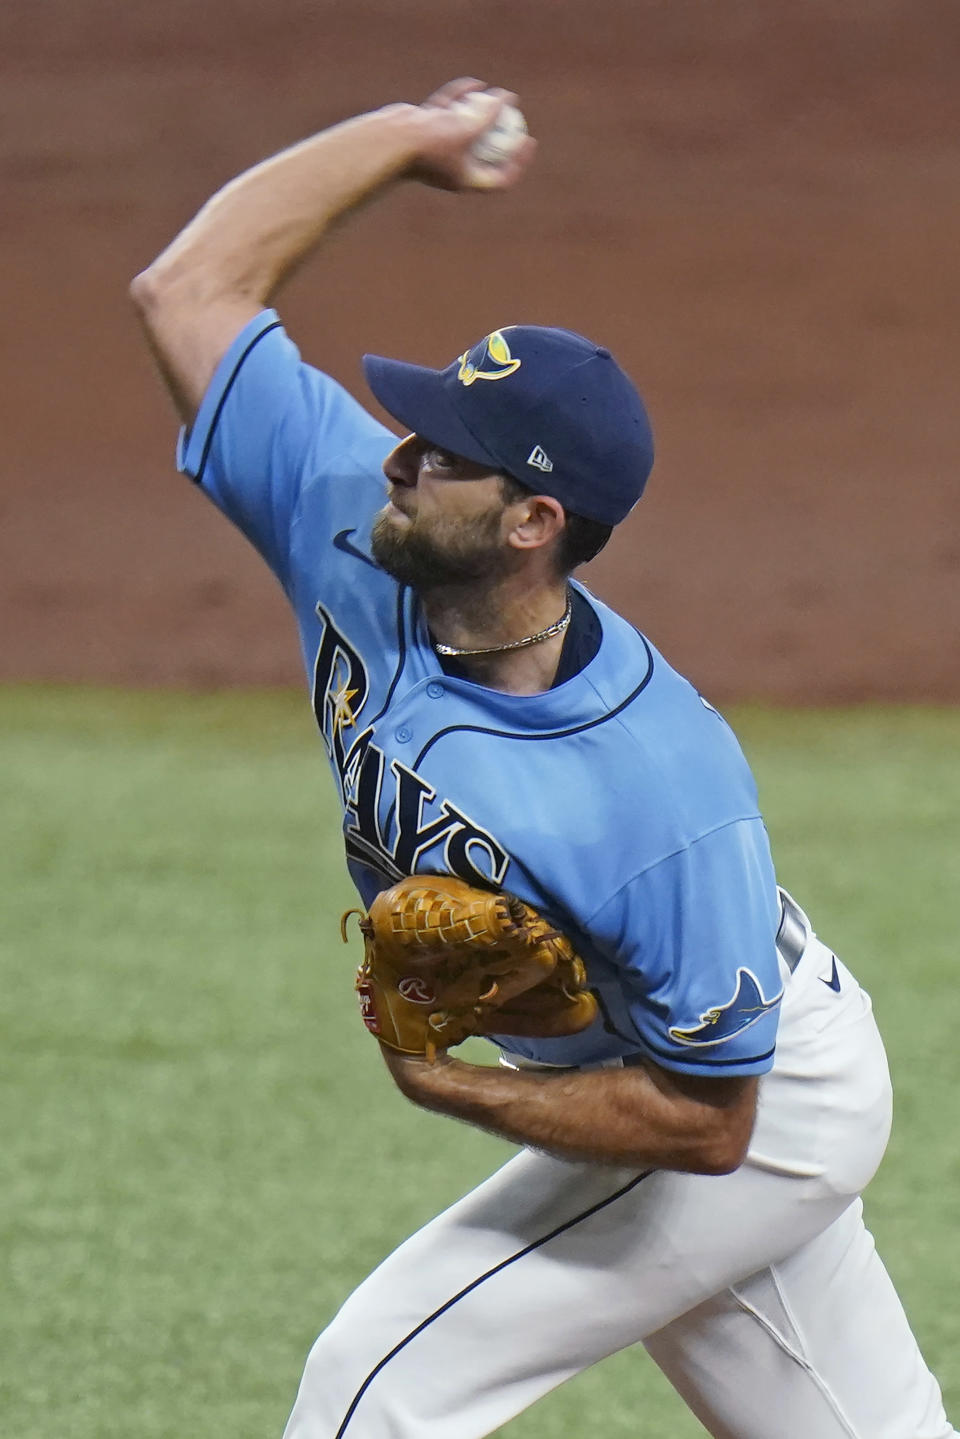 Tampa Bay Rays' Michael Wacha pitches to the New York Yankees during the third inning of a baseball game Sunday, April 11, 2021, in St. Petersburg, Fla. (AP Photo/Chris O'Meara)